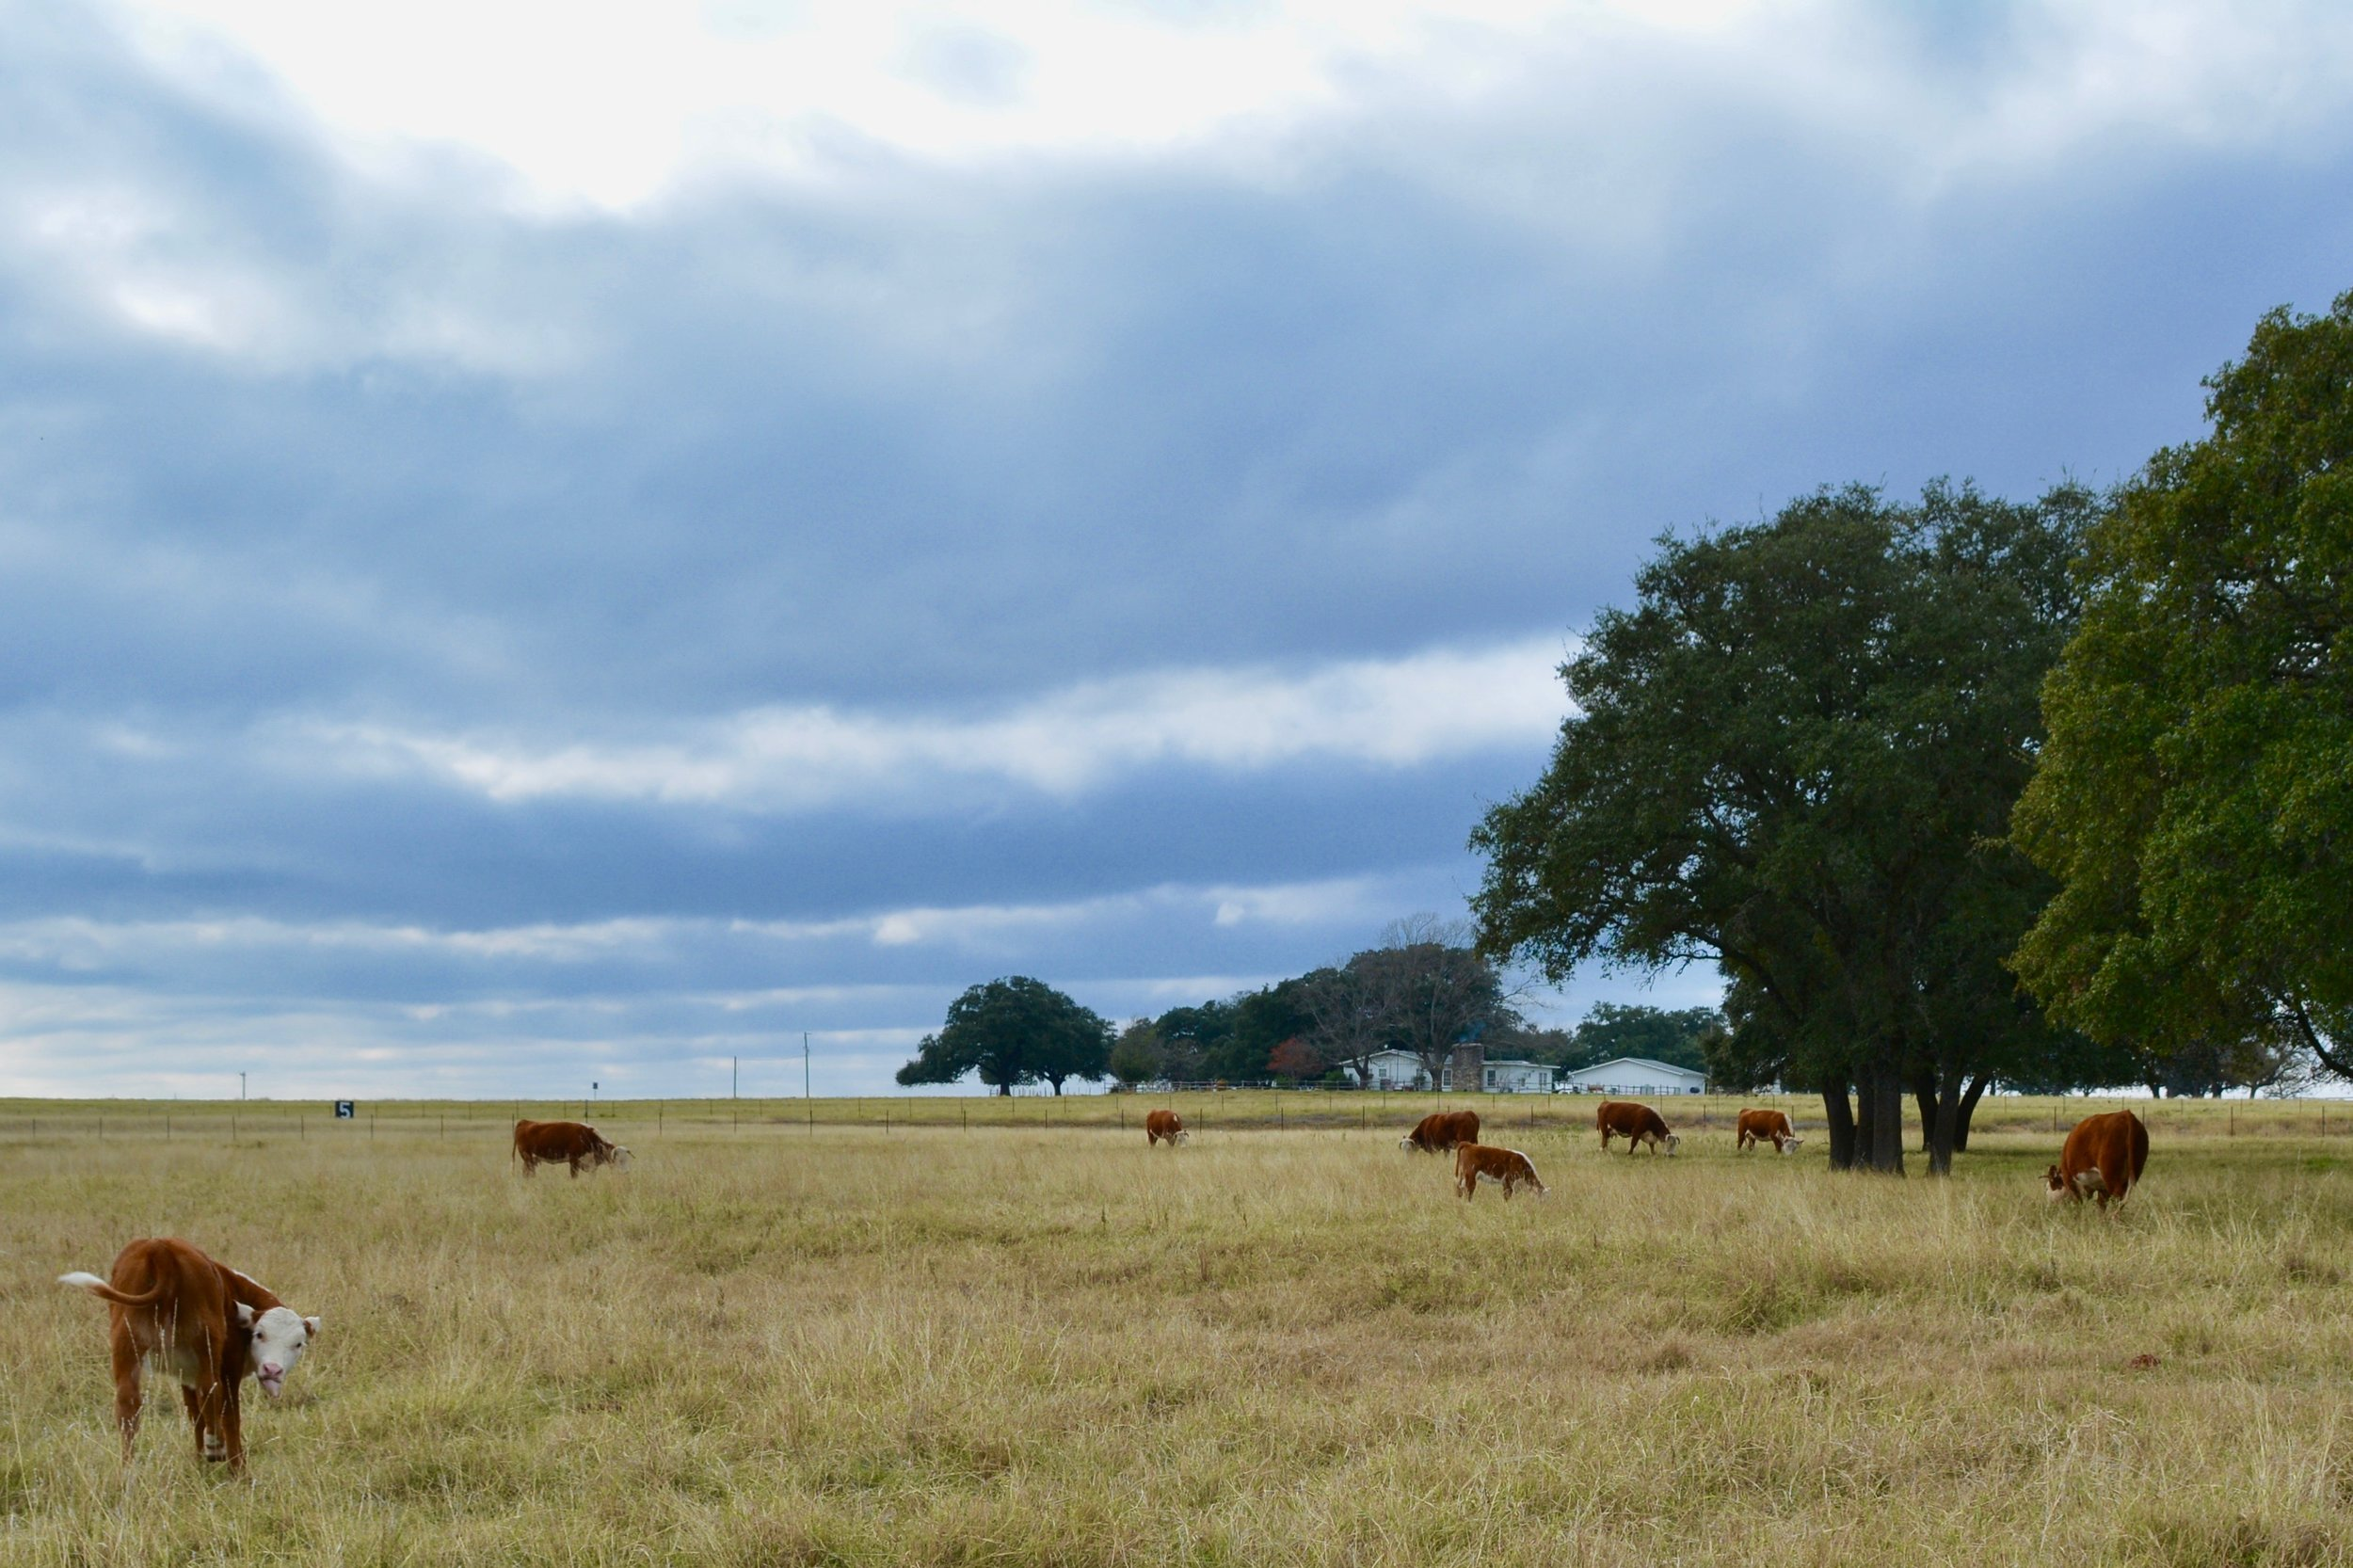 Cattle at LBJ Ranch